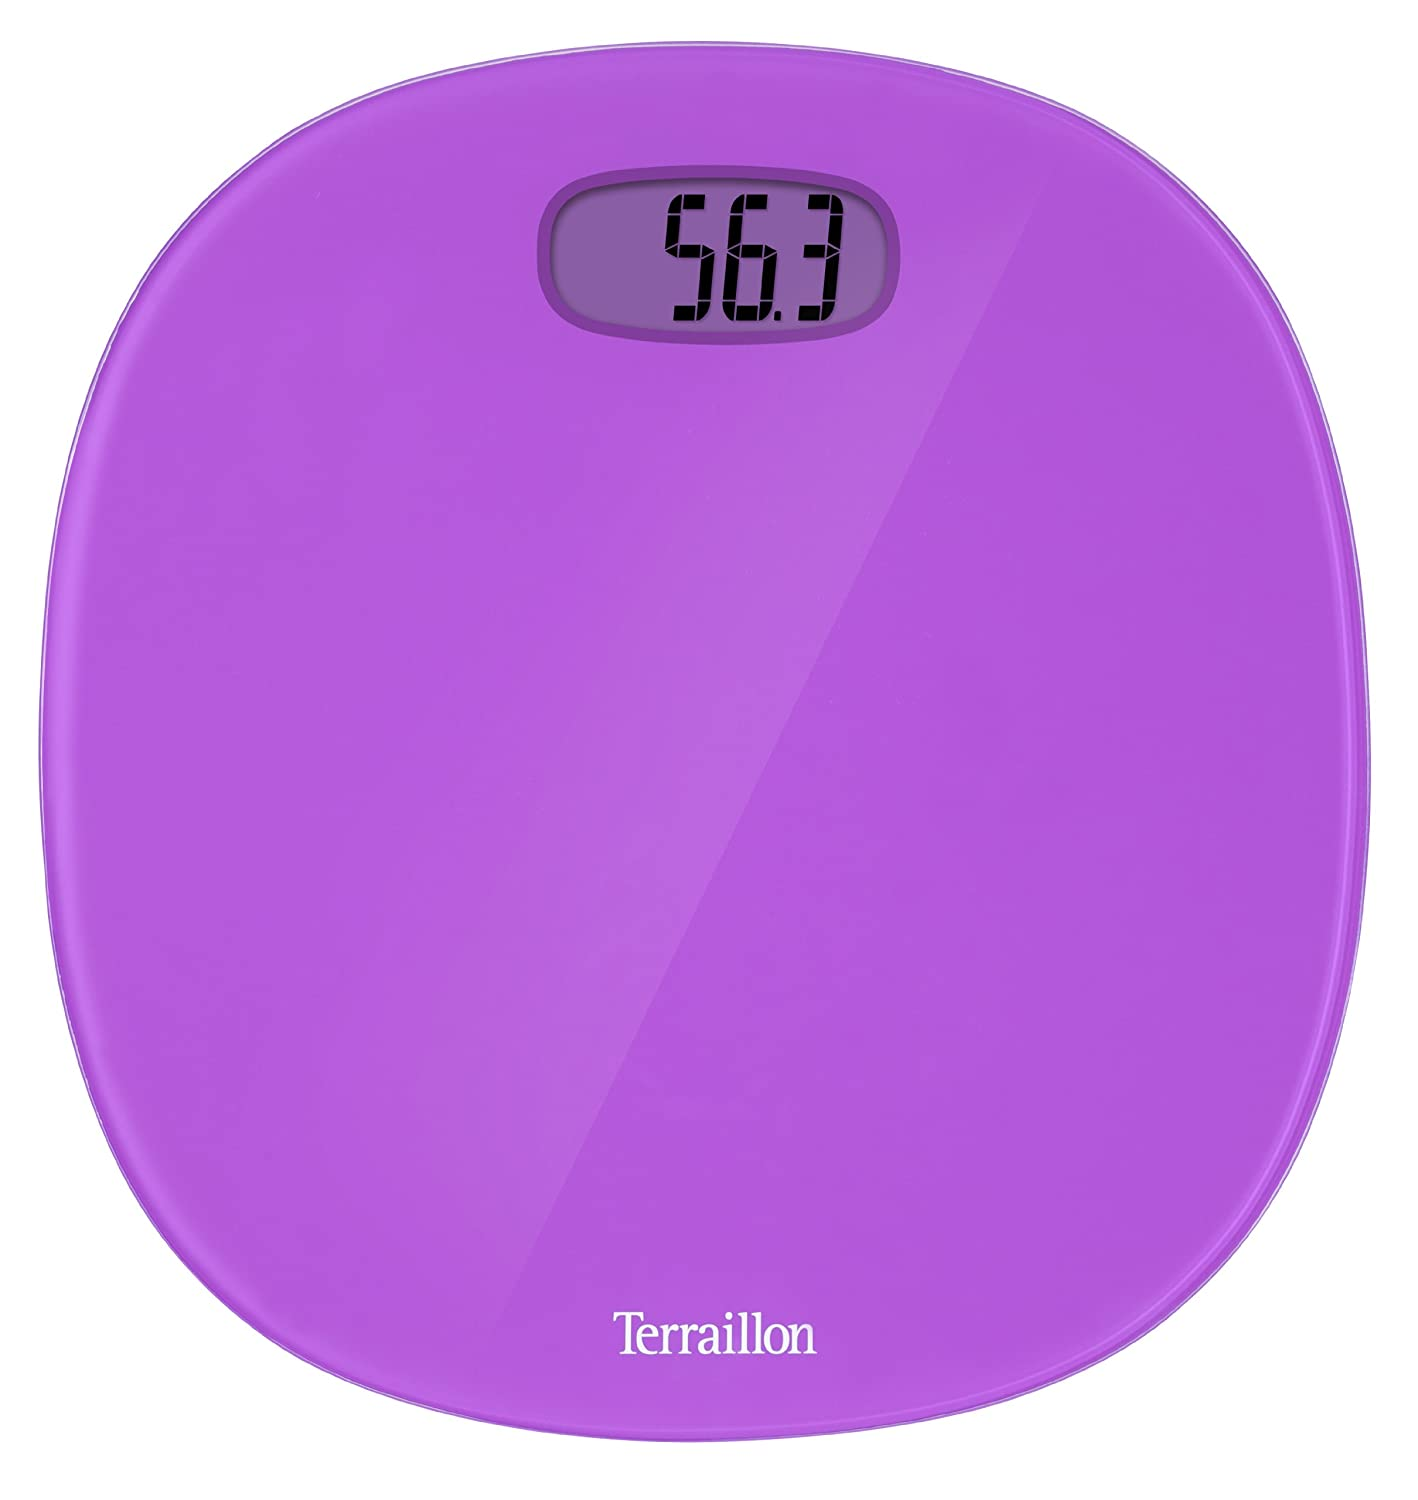 Terraillon Pop Purple Voilet Electronic Bathroom Scale